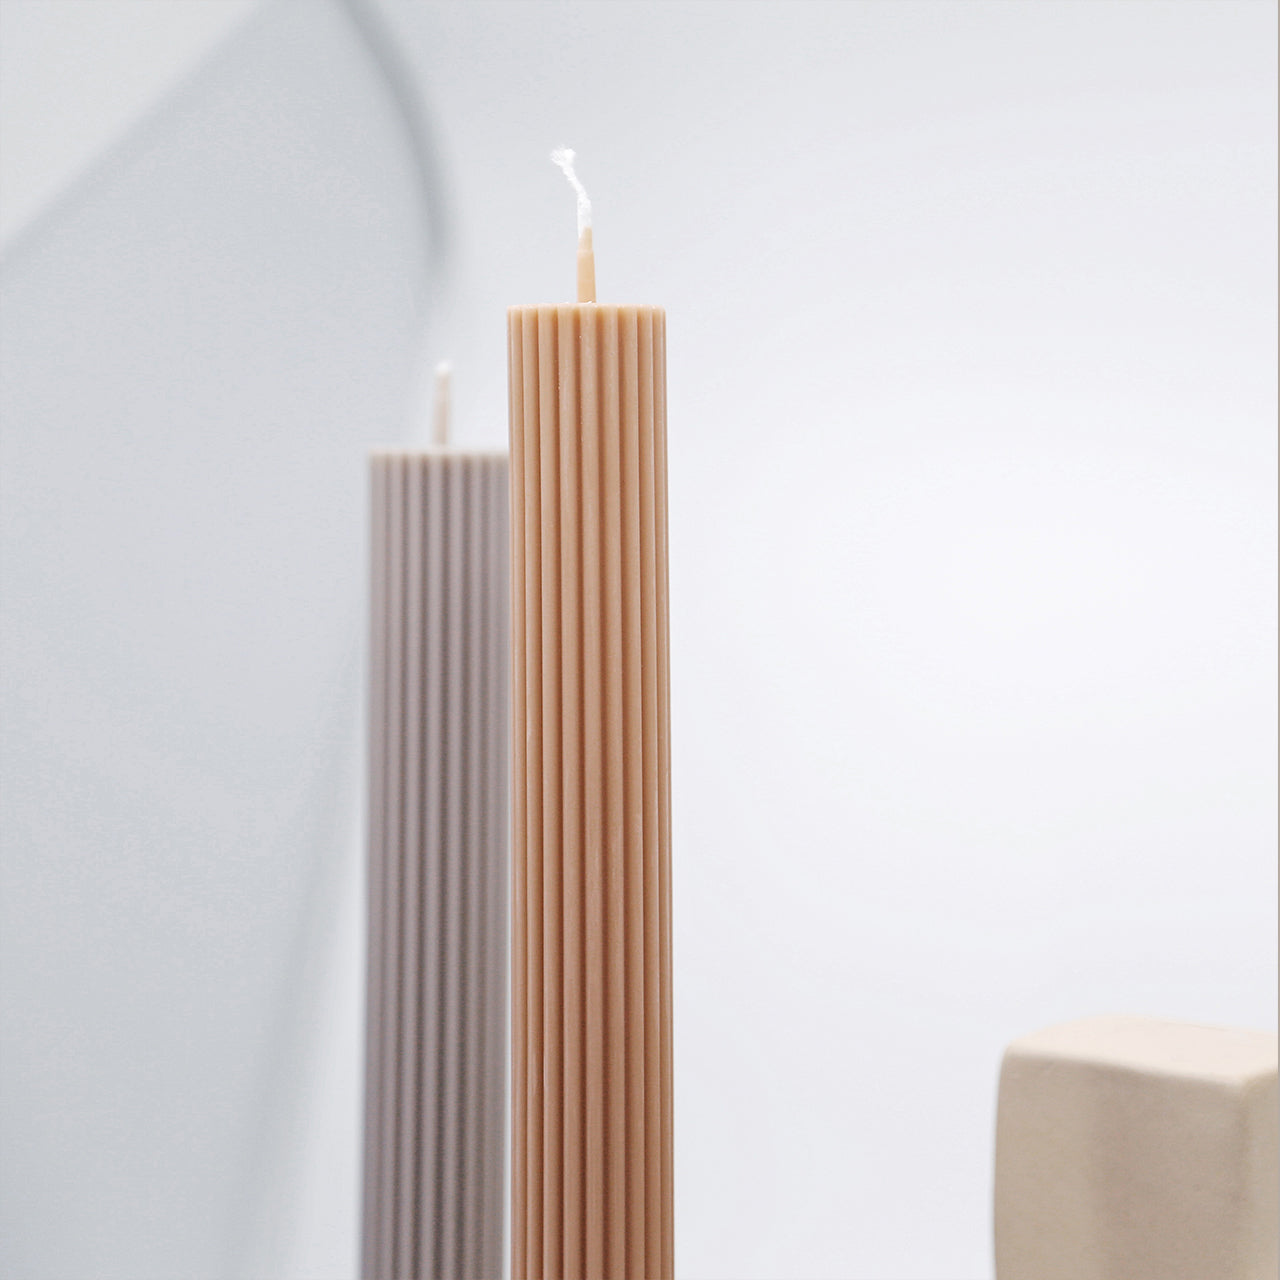 Column Pillar Candle - Beige, Pillar Candle, BLACK BLAZE, BLACK BLAZE - BLACK BLAZE | Scents of Australia | Natural Home Fragrance Label  | Australia's 1St Wooden Wick Candle